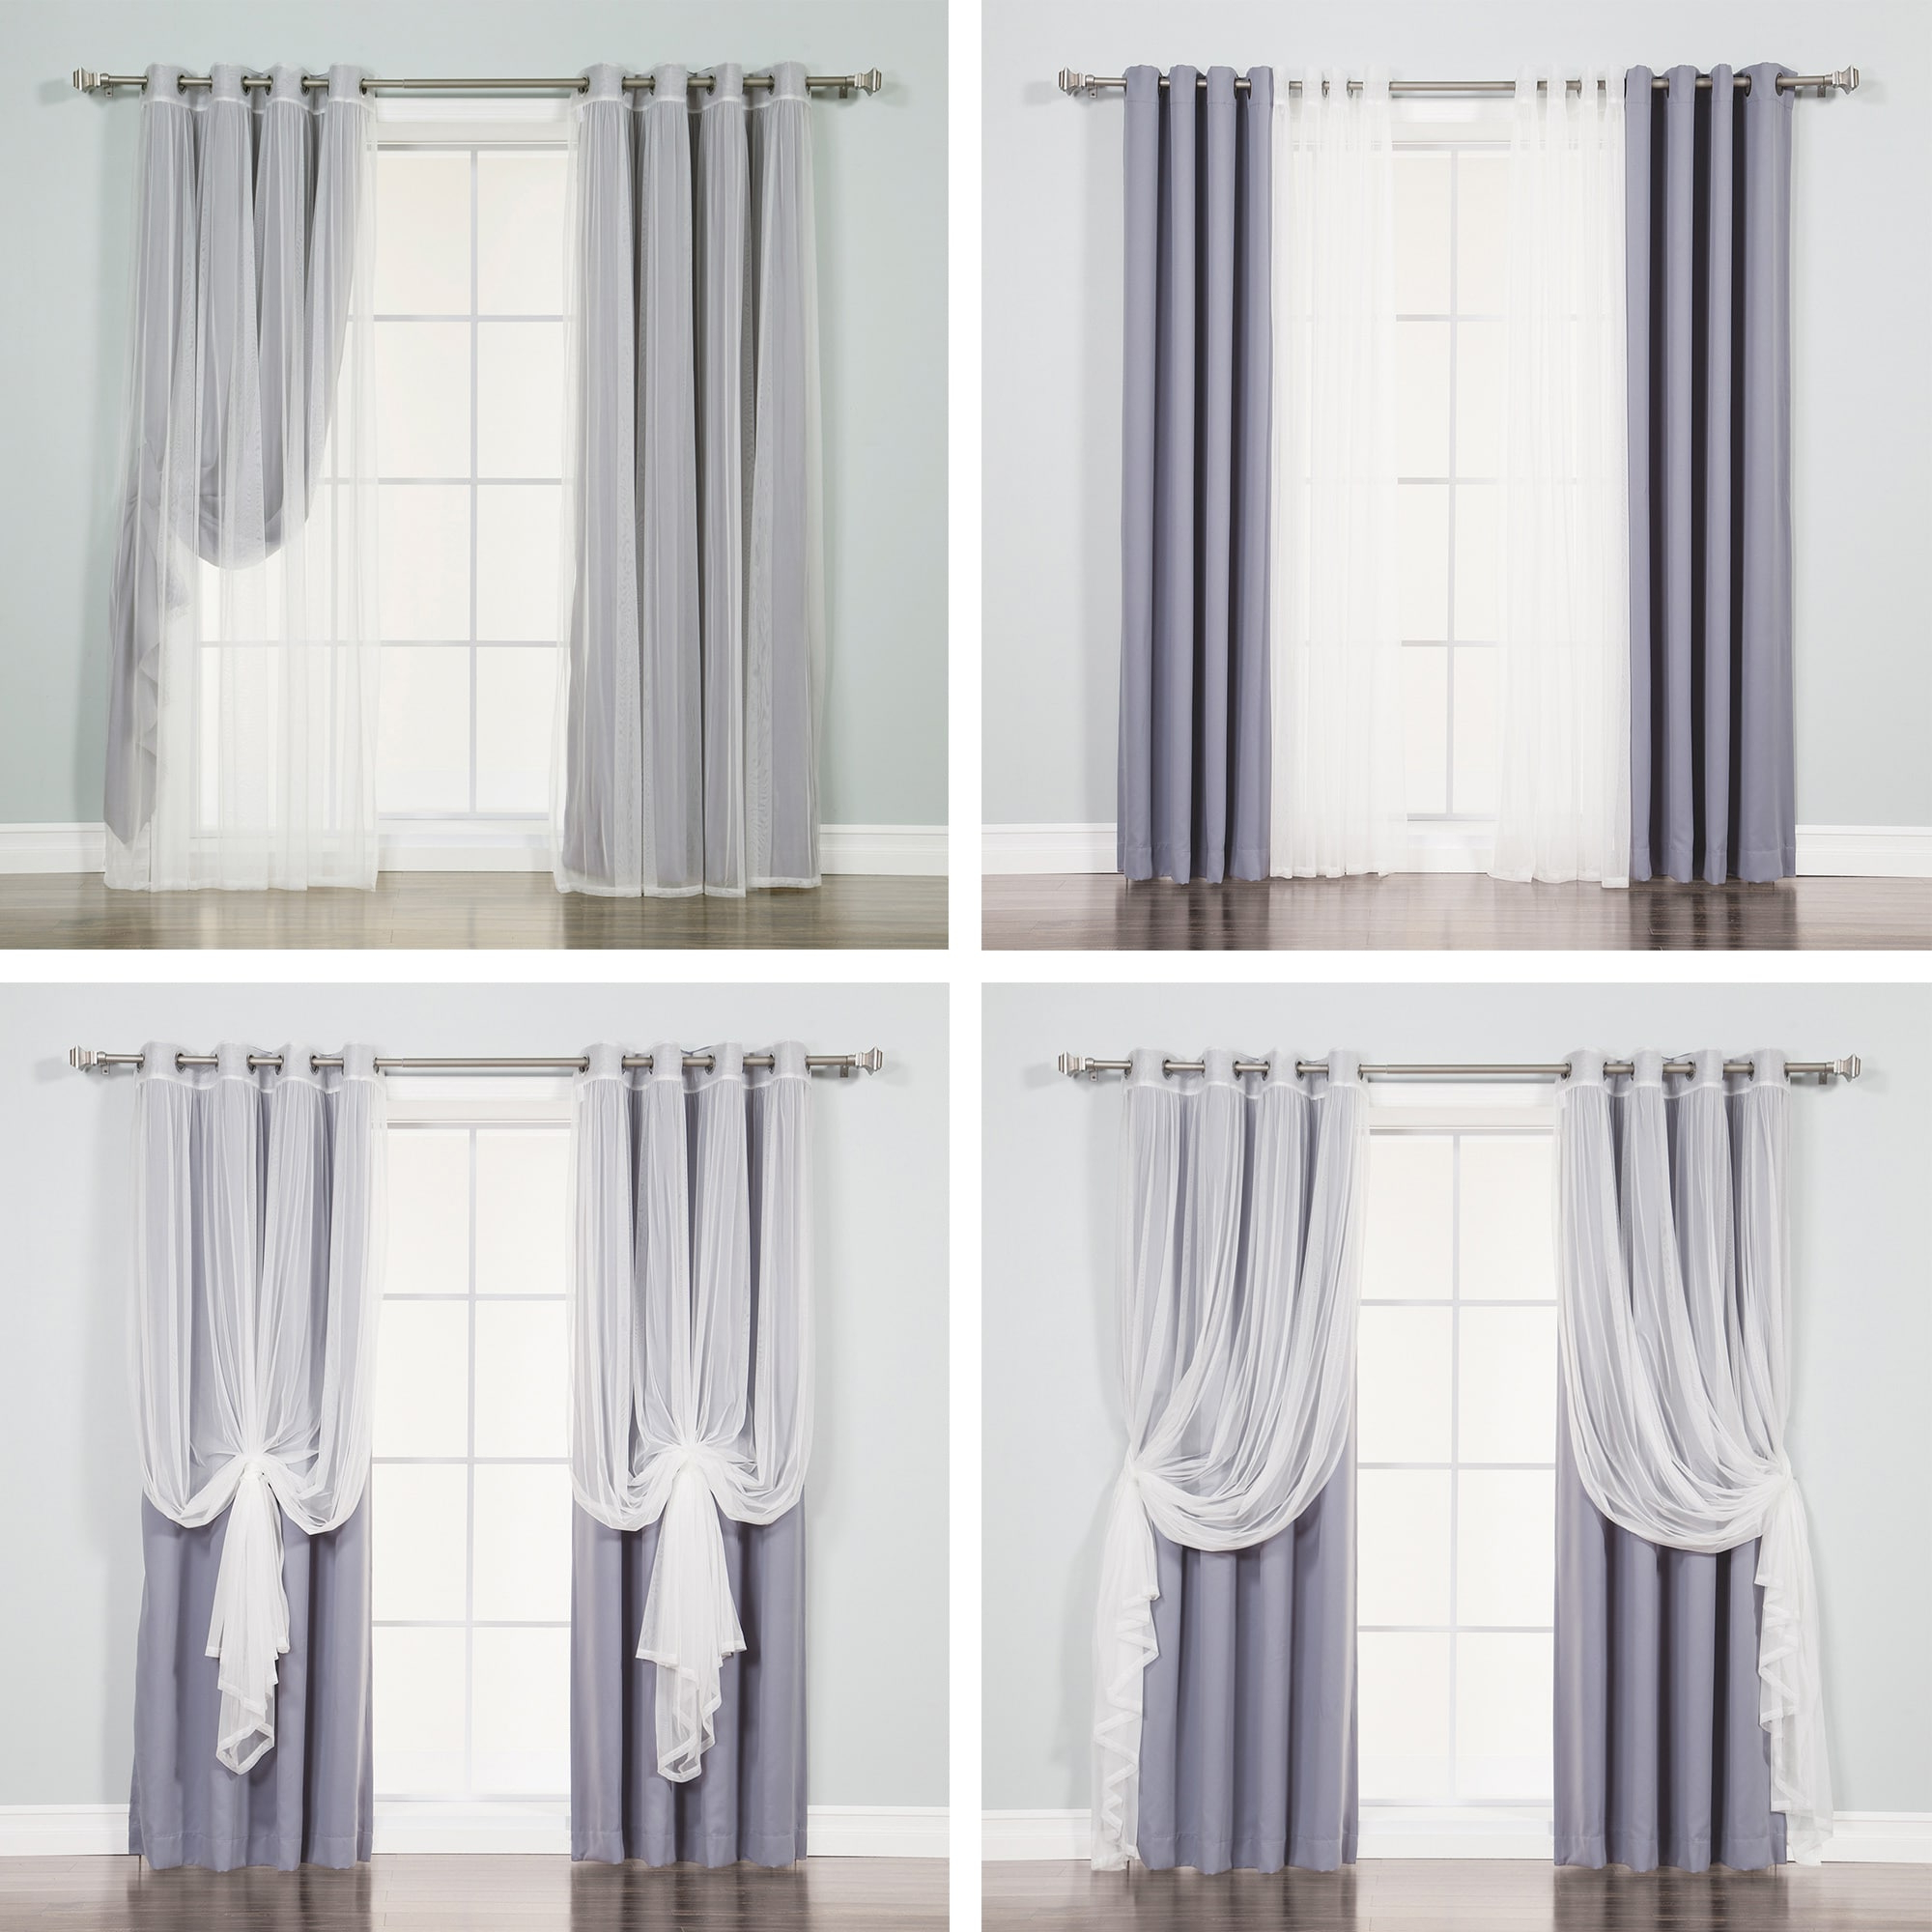 2021 Tulle Sheer With Attached Valance And Blackout 4 Piece Curtain Panel Pairs With Regard To Aurora Home Mix & Match Tulle Sheer With Attached Valance And Blackout 4 Piece Curtain Panel Pair (View 6 of 20)